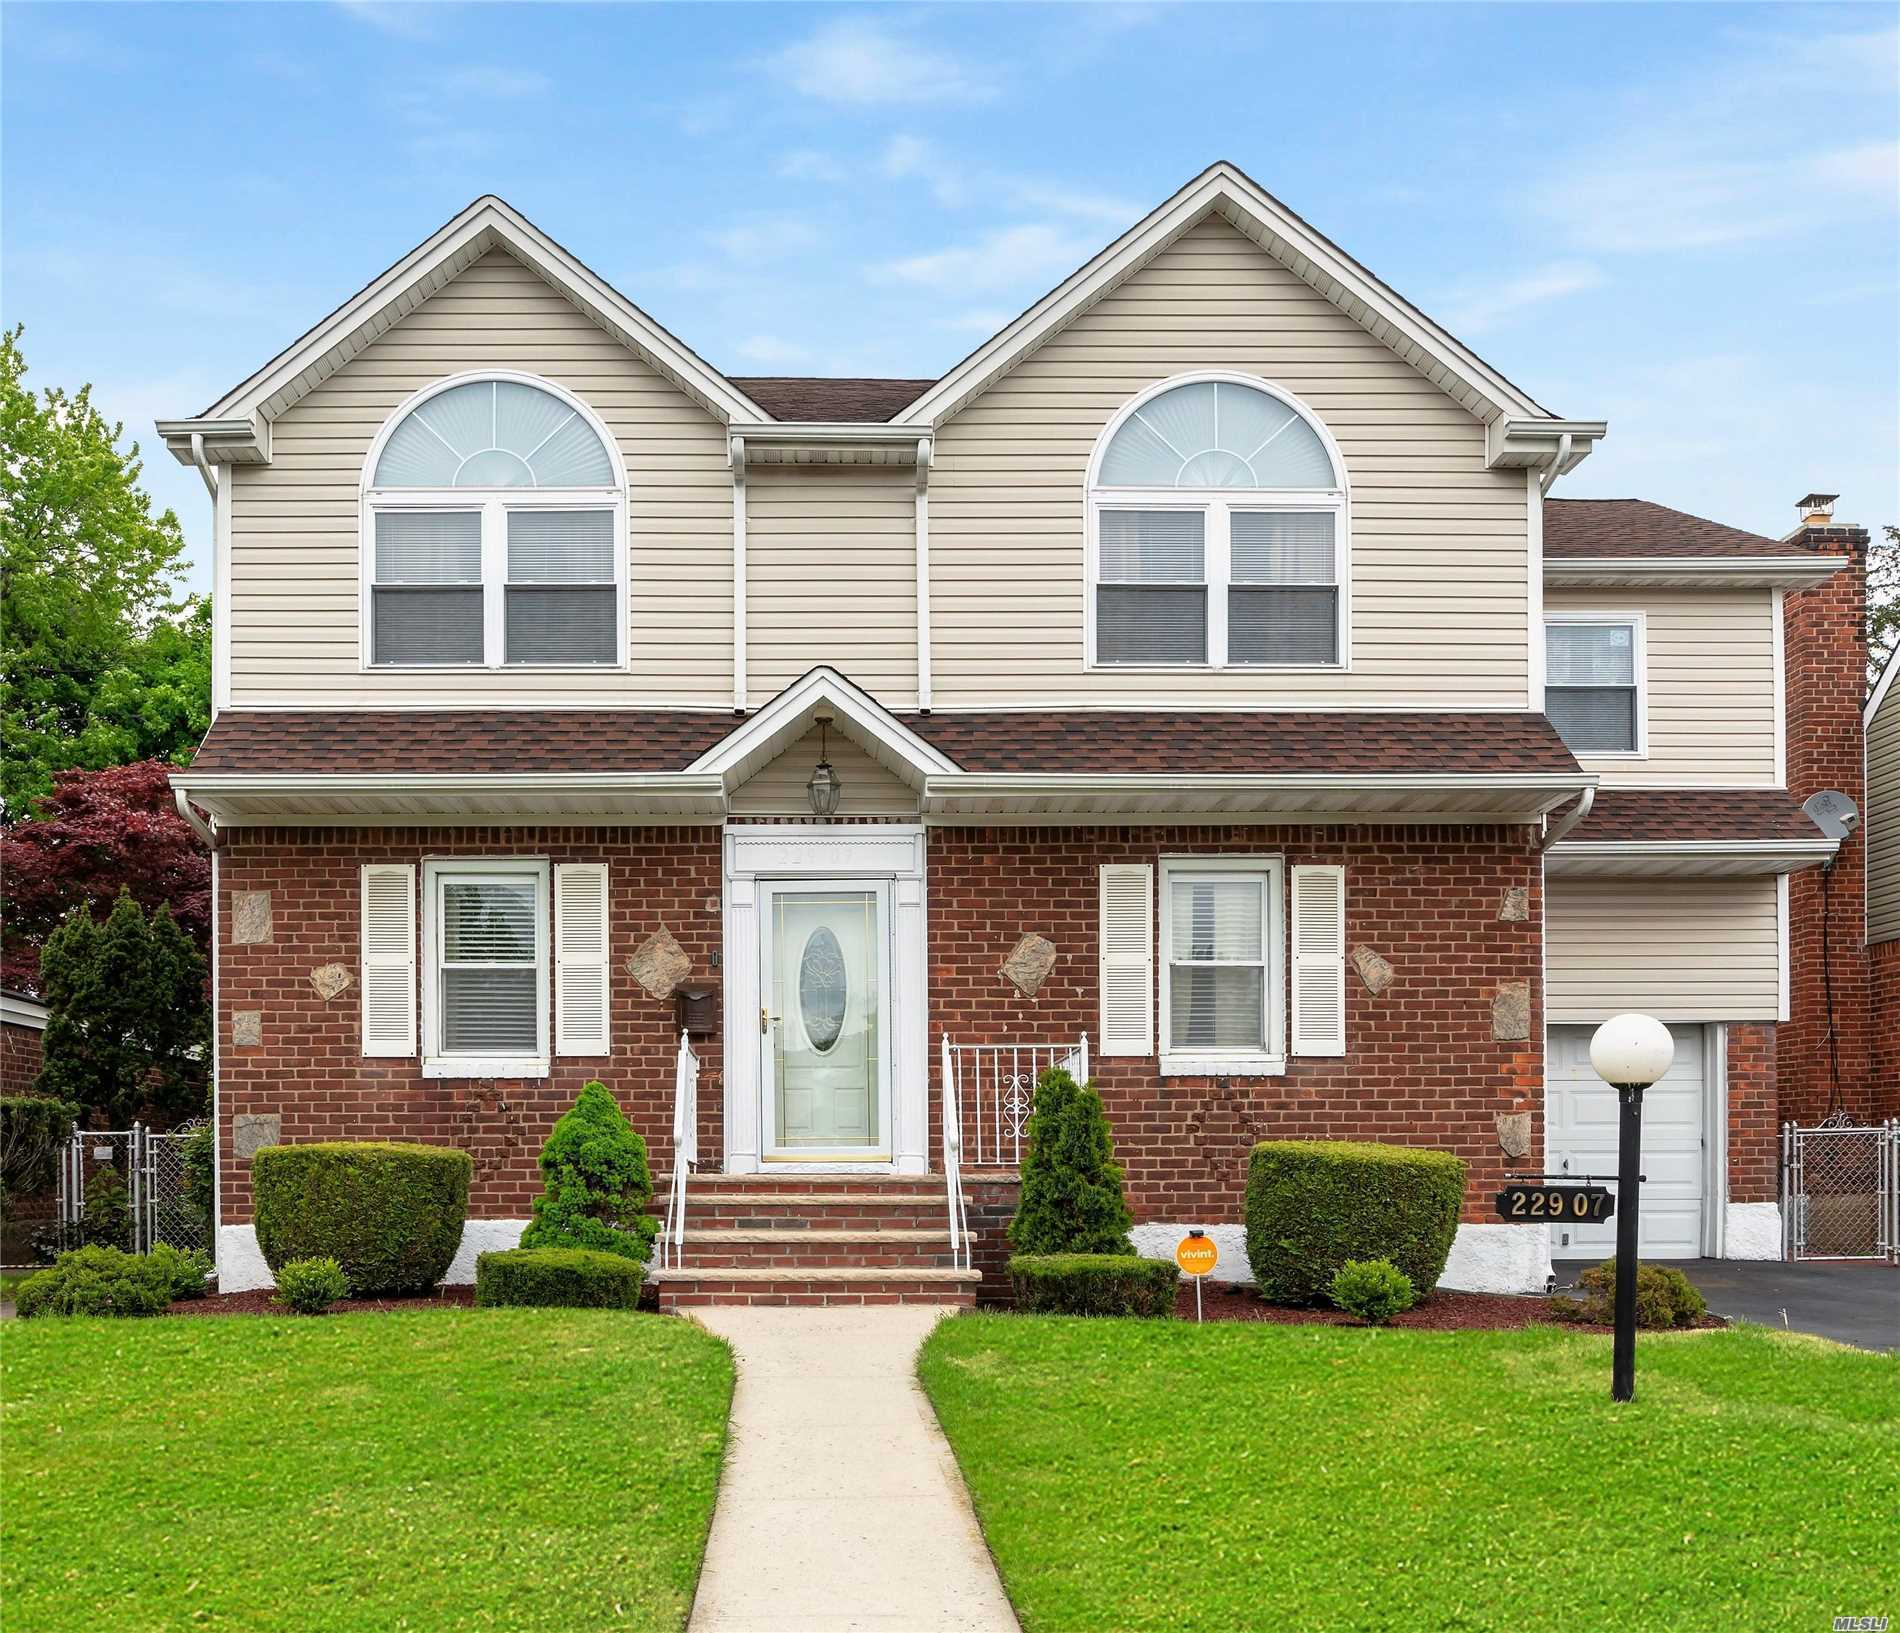 This charming XL 2-family property w/park-like grounds, nestled in the heart of Queens, MUST BE SEEN. It has Hardwoods throughout,  2 Kitchens, 2 LR/ DR Combos, 4 Bds, 3 Fbths, , jetted tubs, 2 walk-in Closets, 2nd fl. vaulted ceiling & Skylight, surround sound, finished Basement w/OSE, attached garage w/electronic opener and close to all forms of transportation. The unlimited other amenities, combined w/the unlimited new memories that can be made in this HOME, is REMARKABLE!